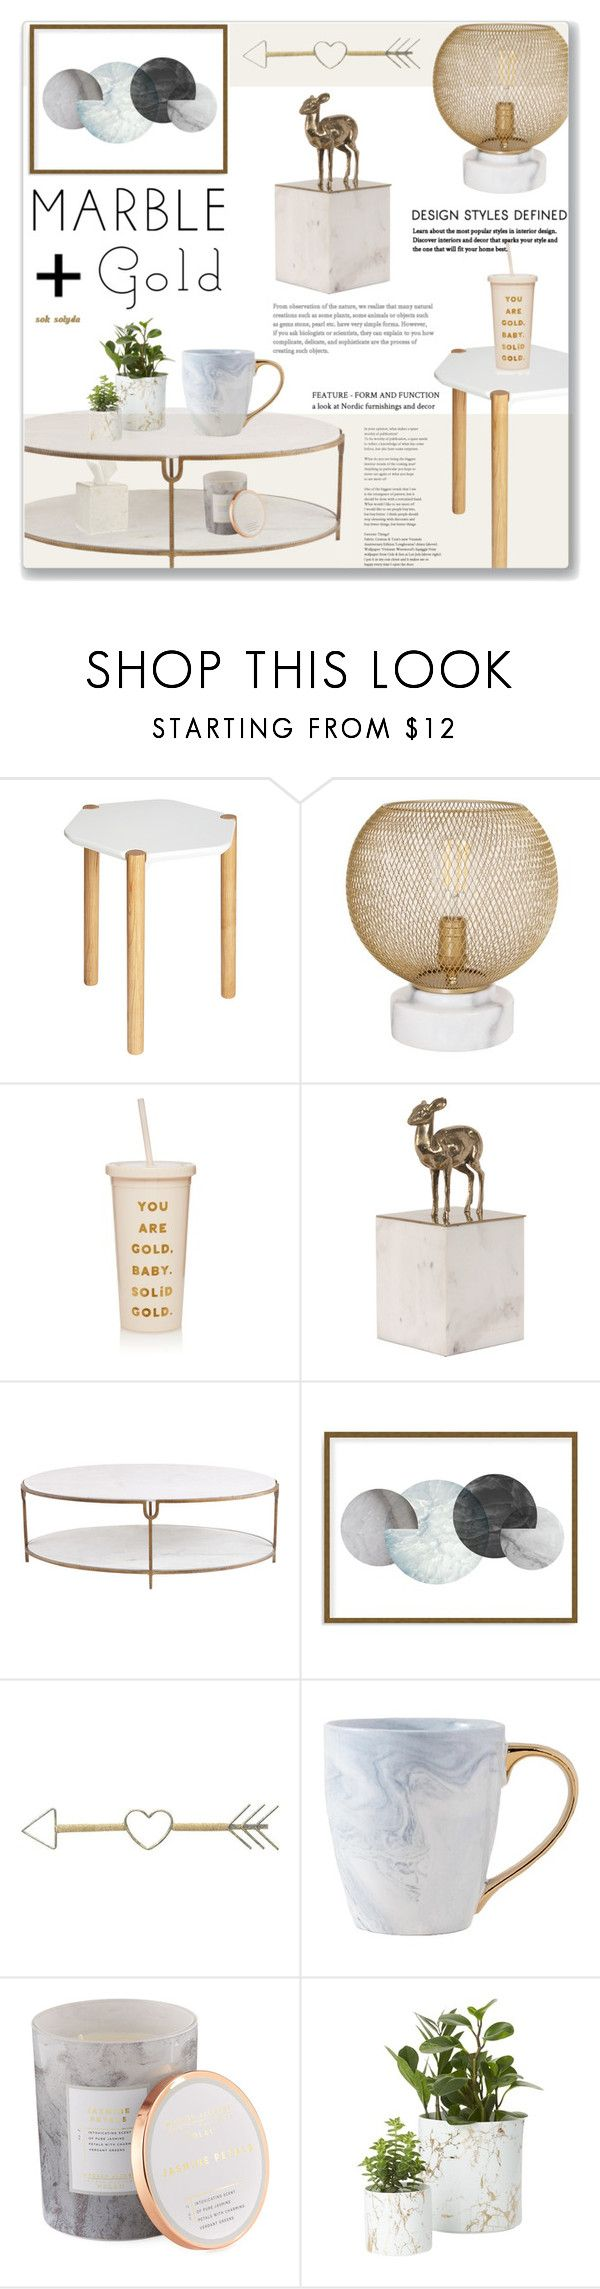 """""""Classic Elegance - Marble Home: 24/04/17"""" by solyda-sok ❤ liked on Polyvore featuring interior, interiors, interior design, home, home decor, interior decorating, Umbra, cupcakes and cashmere, ban.do and Global Views"""